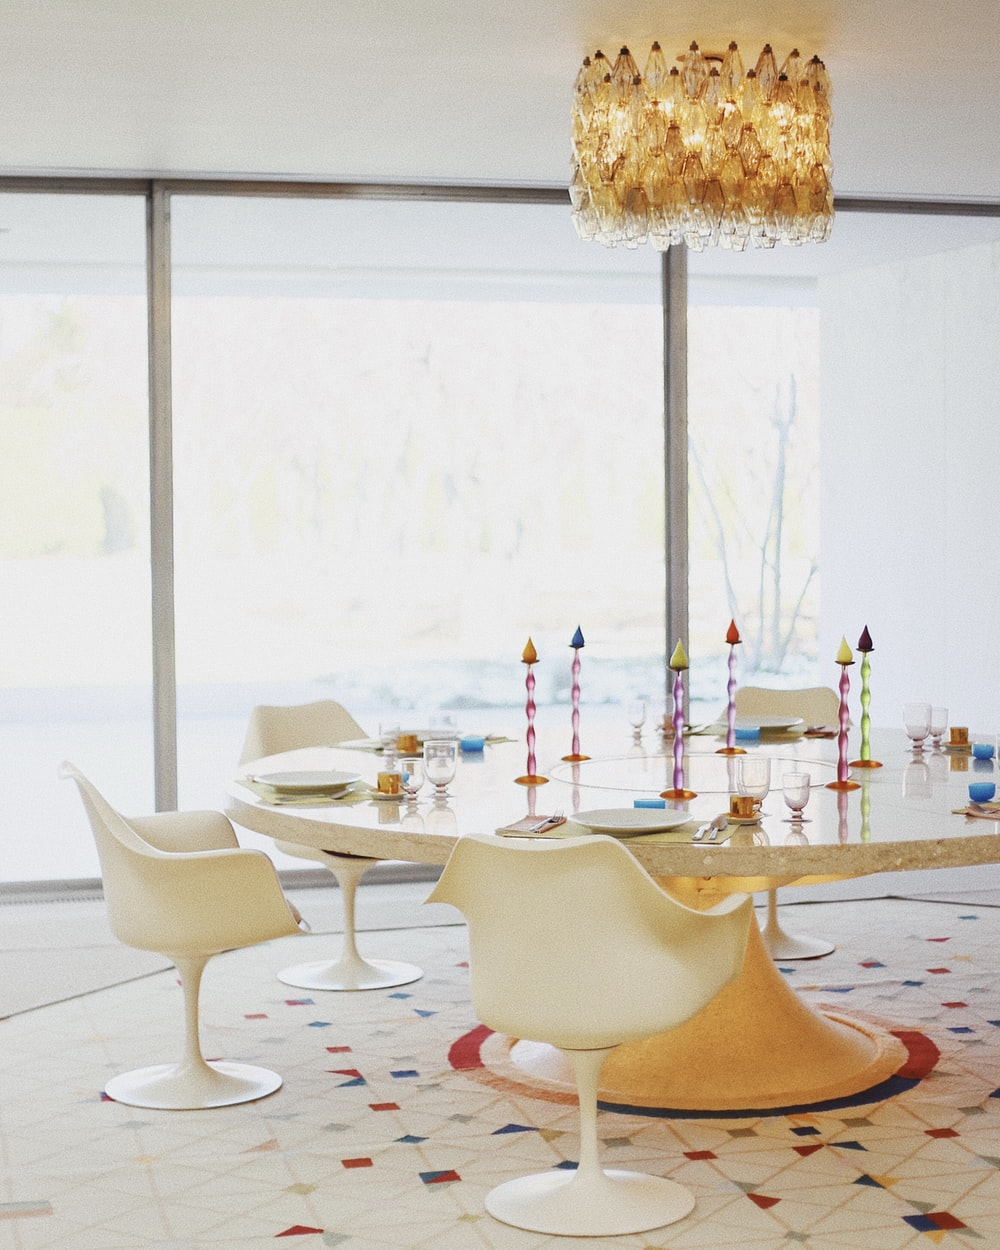 round white and brown table with chairs under glass chandelier